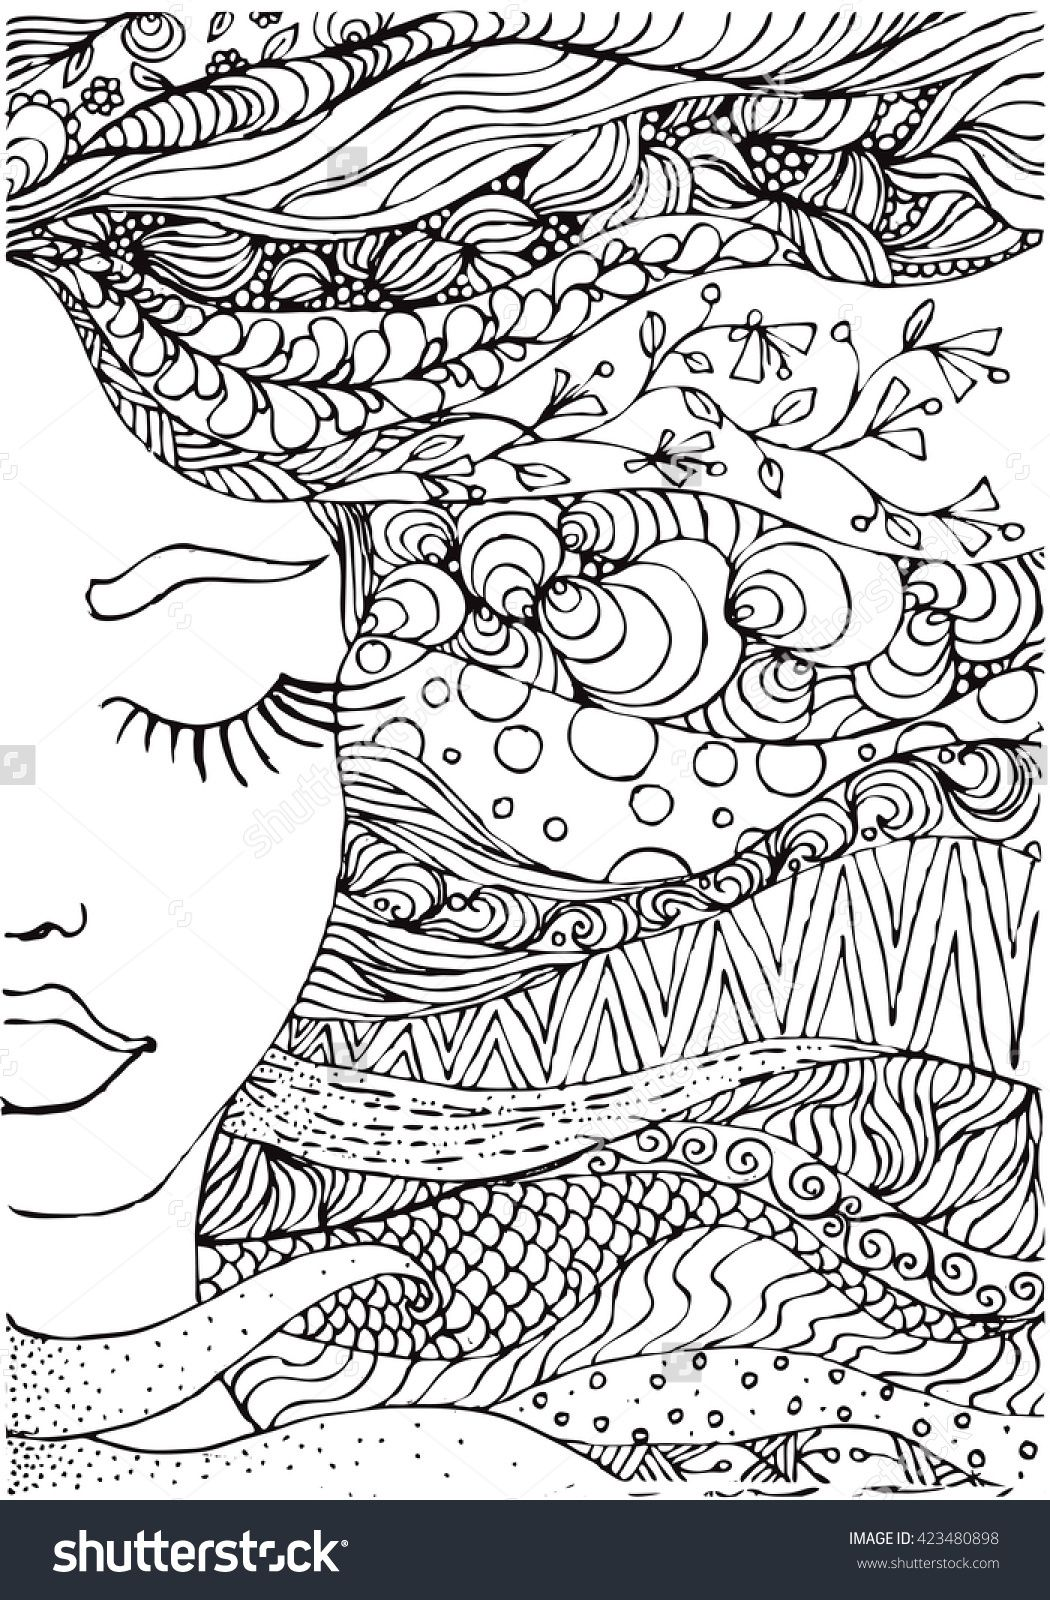 Ink doodle womanus face and flowing coloring page zendala mandala